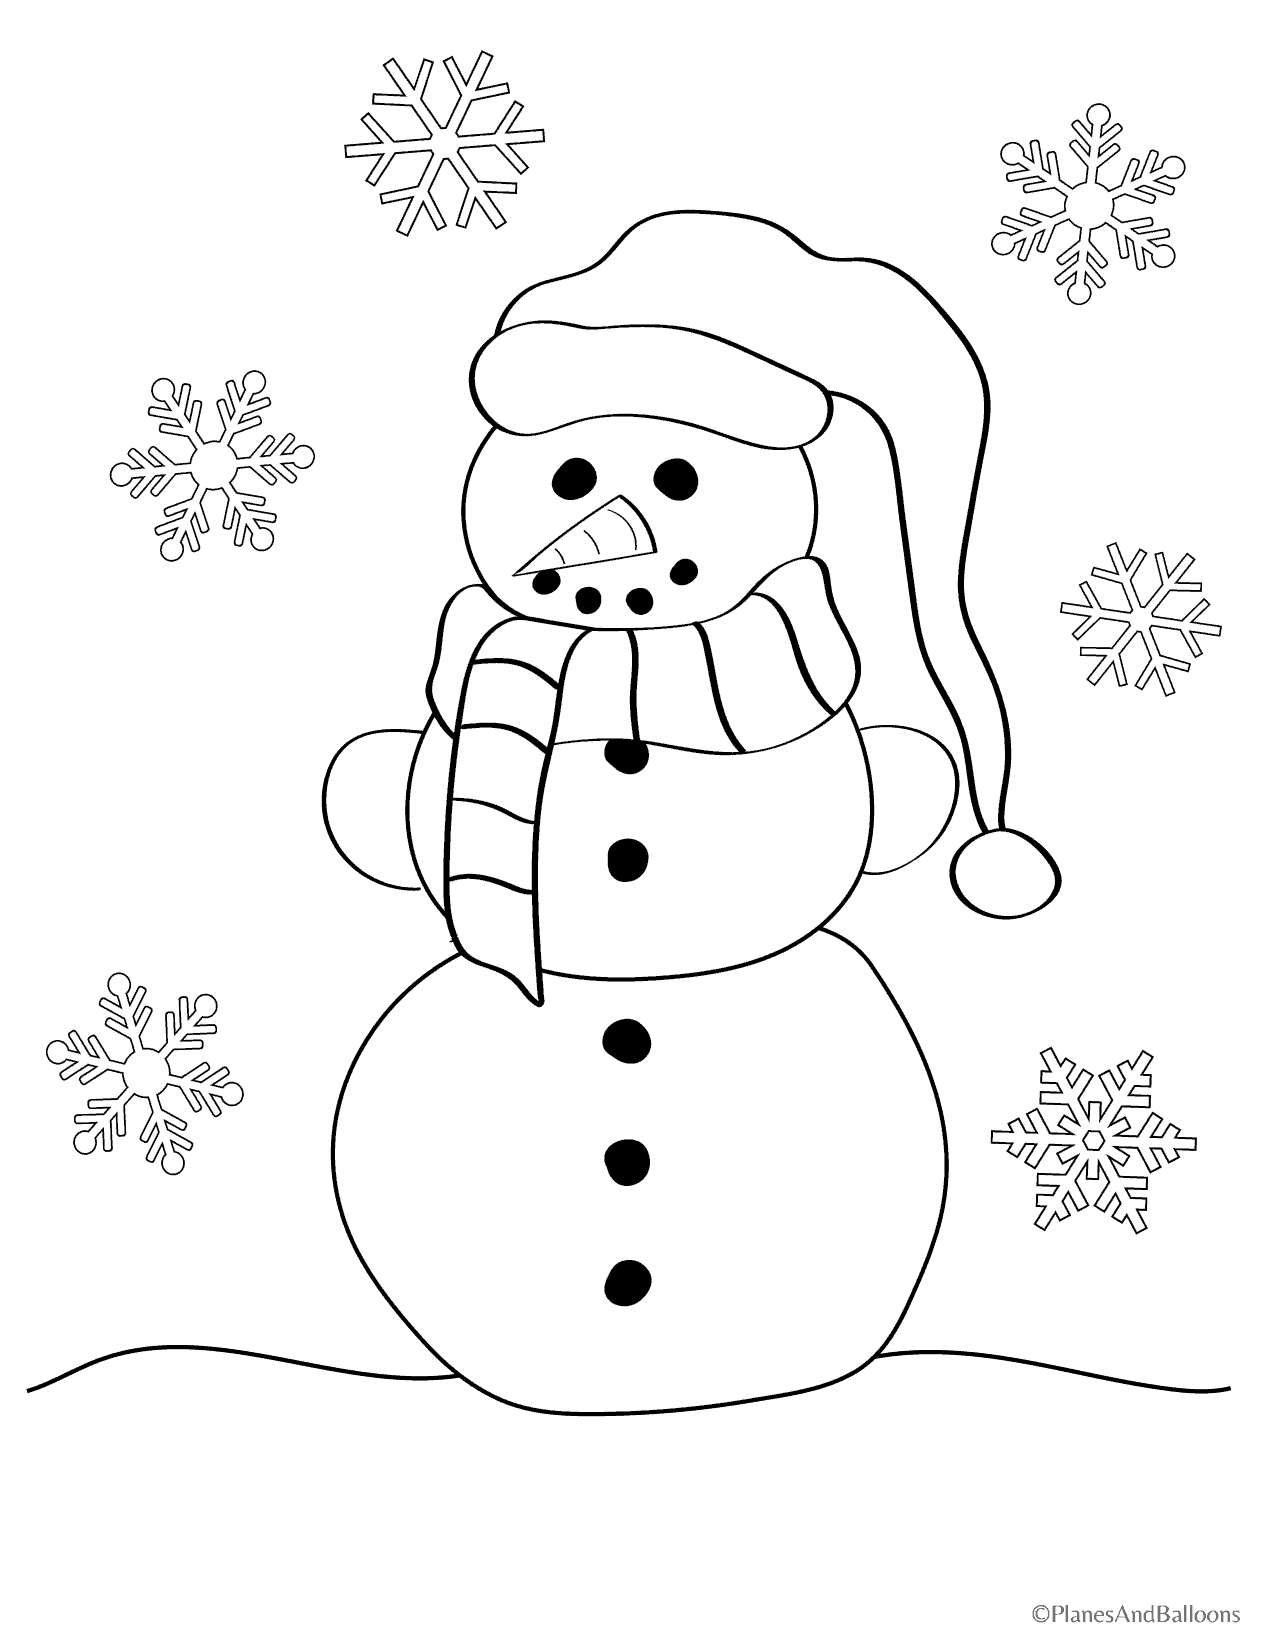 Snowman coloring pages for all the kids who love winter for Coloring pages of snowman